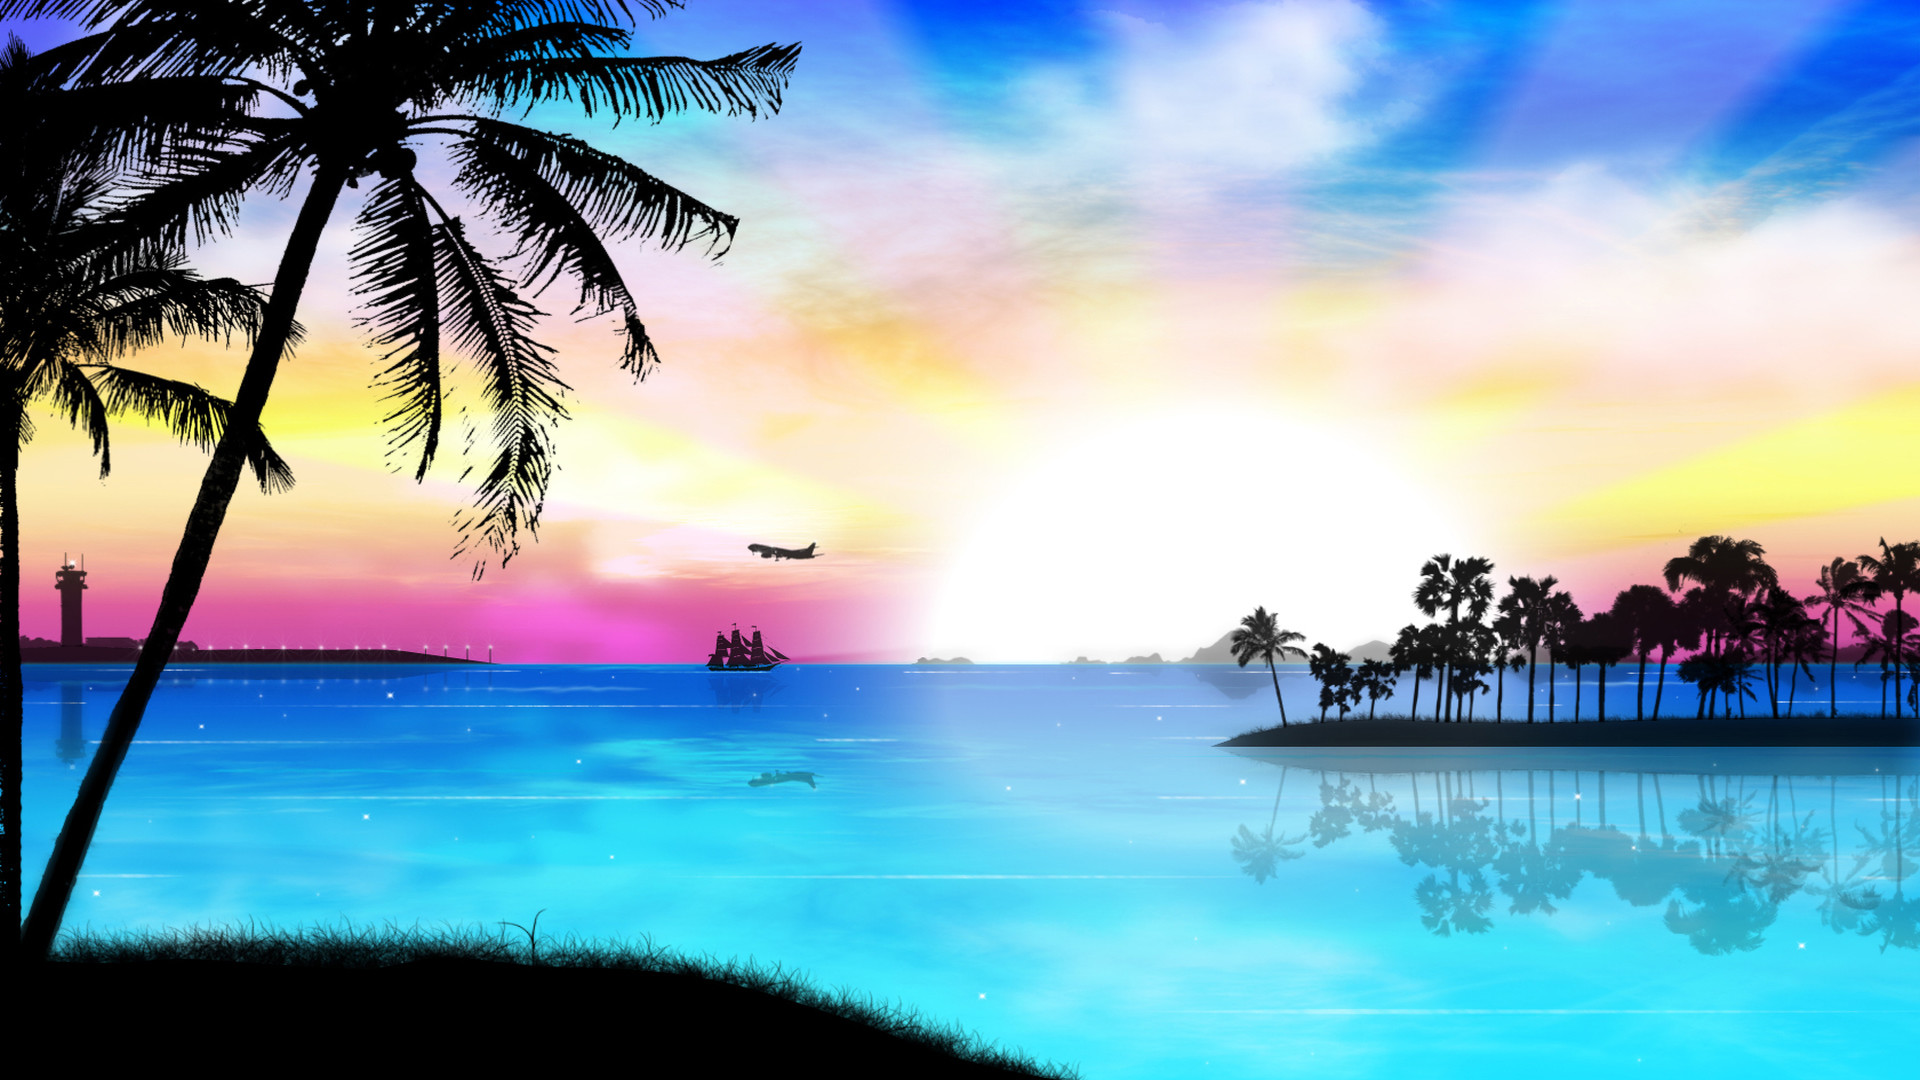 Beach paradise wallpaper wallpapertag - Paradise pictures backgrounds ...